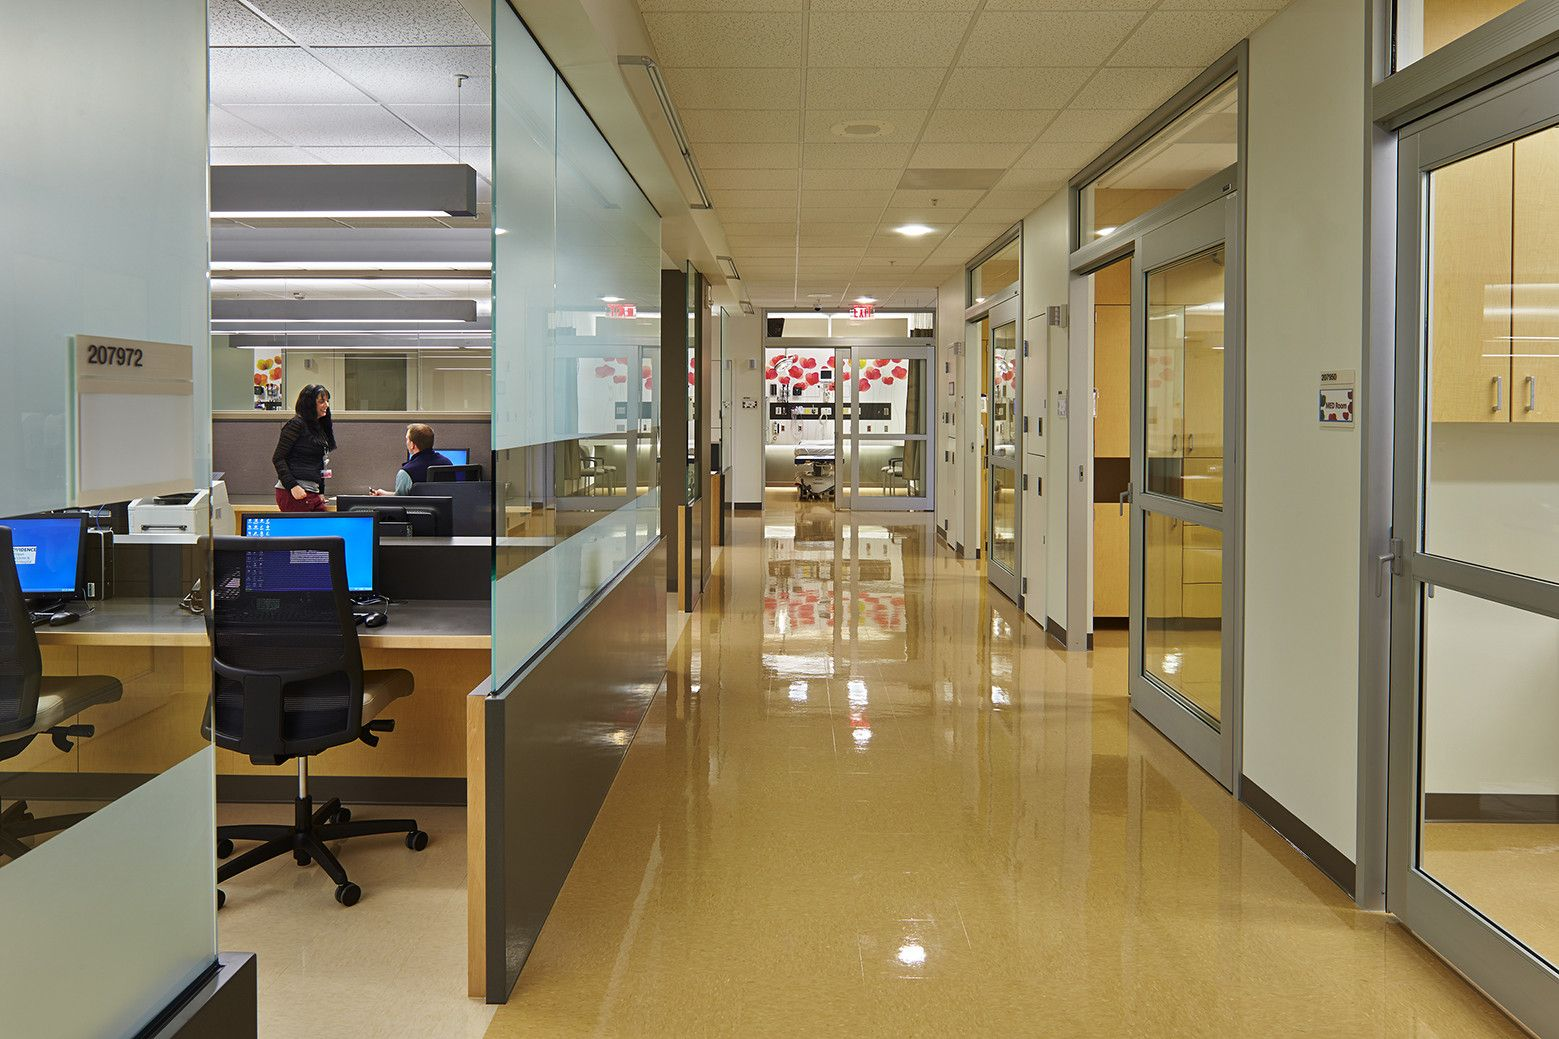 Gallery Of Pediatric Emergency Department At Providence Sacred Heart Medical Center Mahlum 6 Emergency Department Medical Center Hospital Design